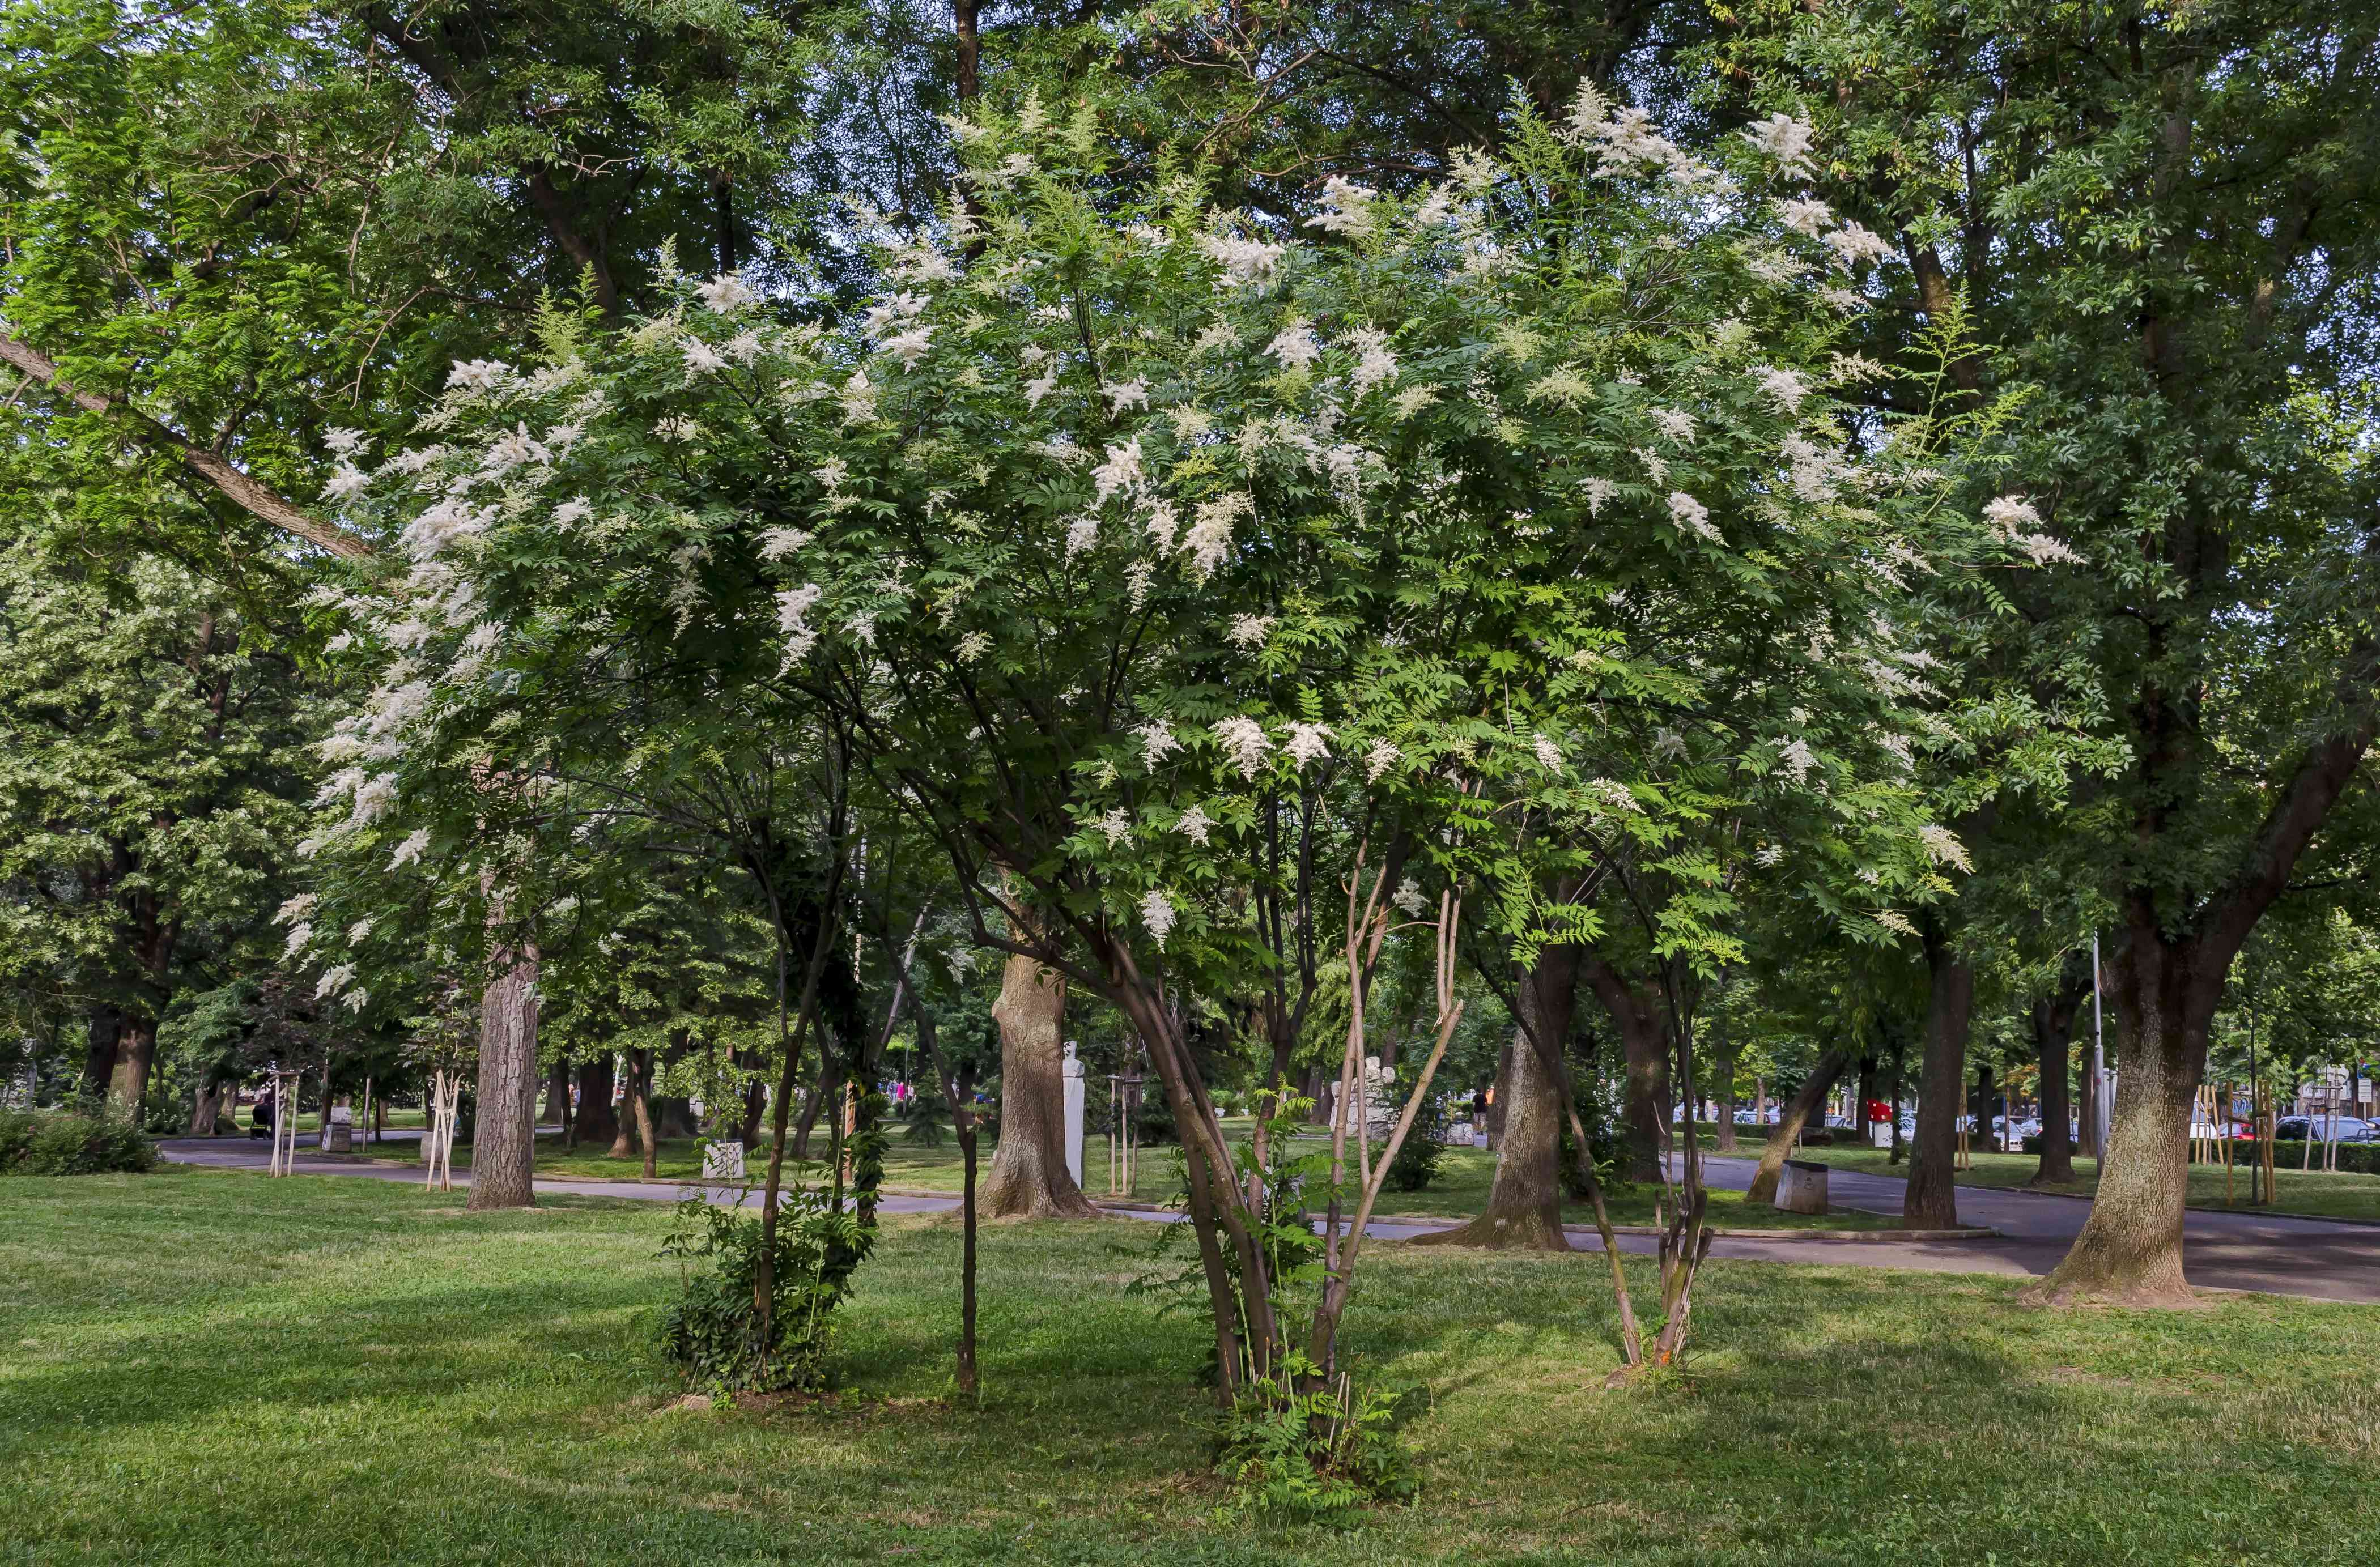 View of Japanese tree lilac or Syringa reticulata full of flowers in the springtime, Popular Zaimov park, district Oborishte